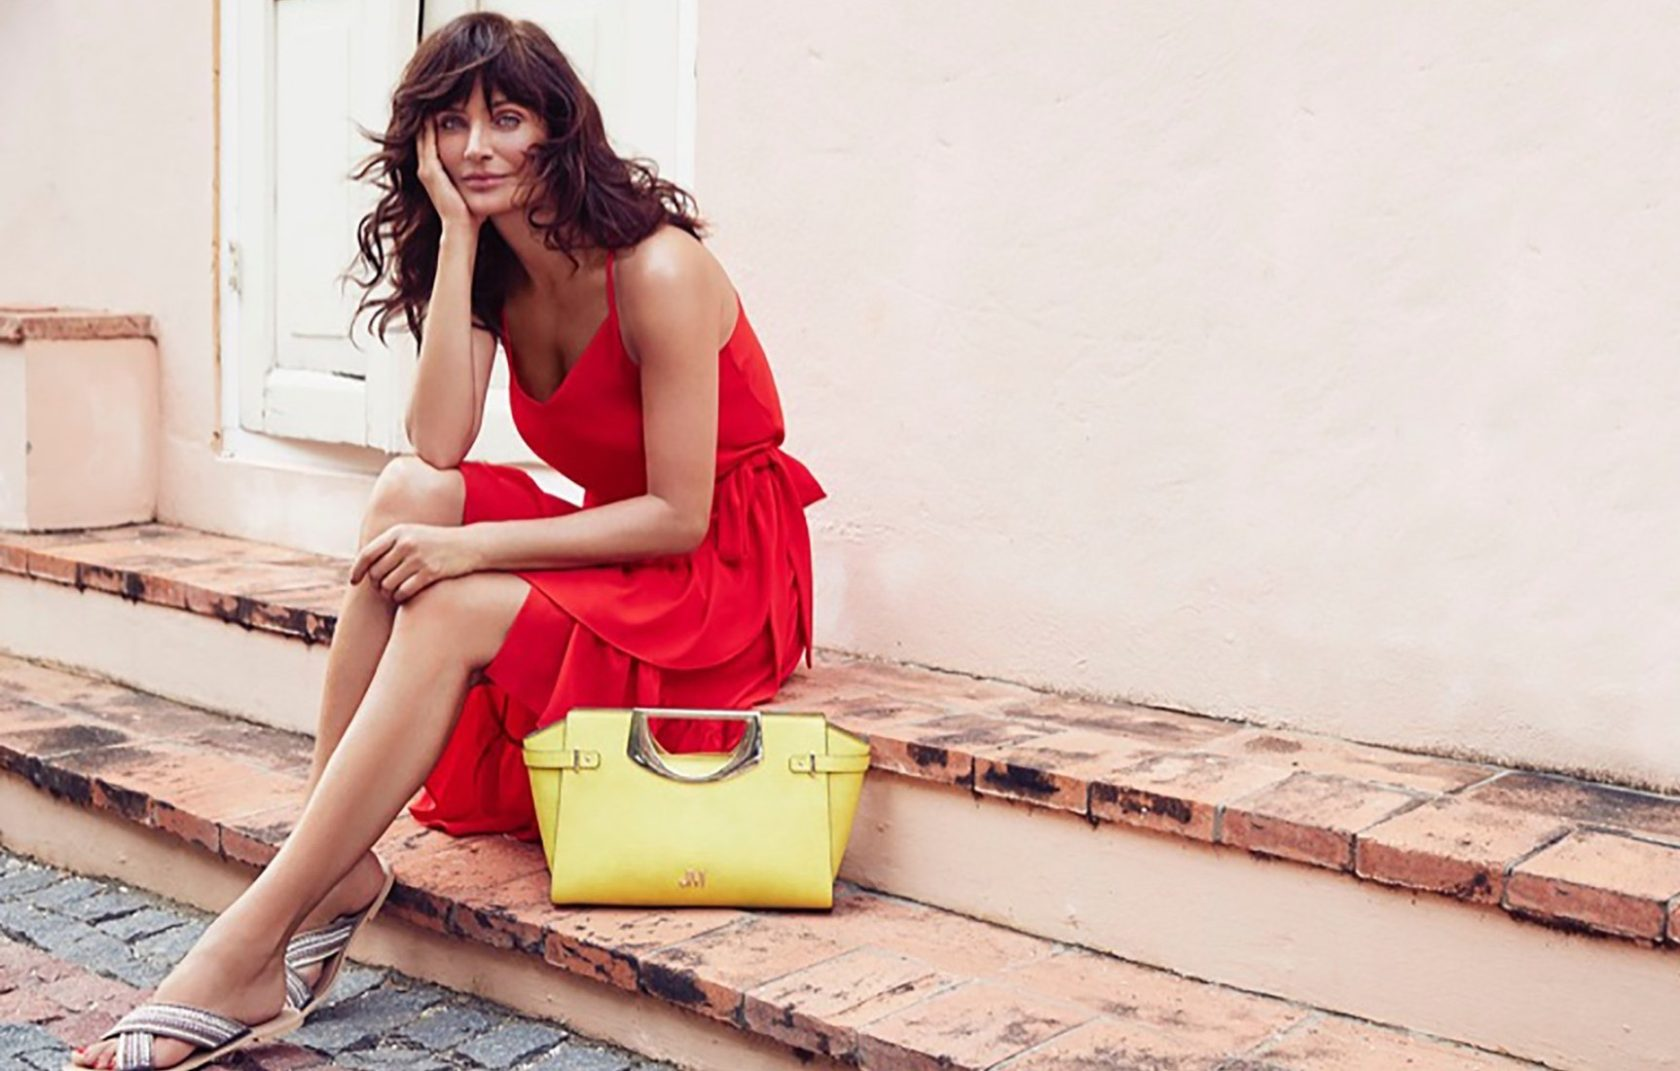 , ,03, MAY 2017. Supermodel Helena Christensen takes on warm weather style for the Summer 2017 campaign from British fashion retailer Debenhams. The new advertisements focus on four unique trends for the colorful shots captured by Max Abadian.In one shot, Helena flaunts her supermodel figure in an one-piece swimsuit with a plunging neckline. And in another image, the Danish beauty poses in a tropical inspired Bardot top with ruffled bikini bottoms. . ©DJ / LAN - 03/5/17 **HANDS OUT pics** ©DJ / LAN - 3/5/17, Image: 331744590, License: Rights-managed, Restrictions: Pictures in this set: 4, Model Release: no, Credit line: Profimedia, Target Press